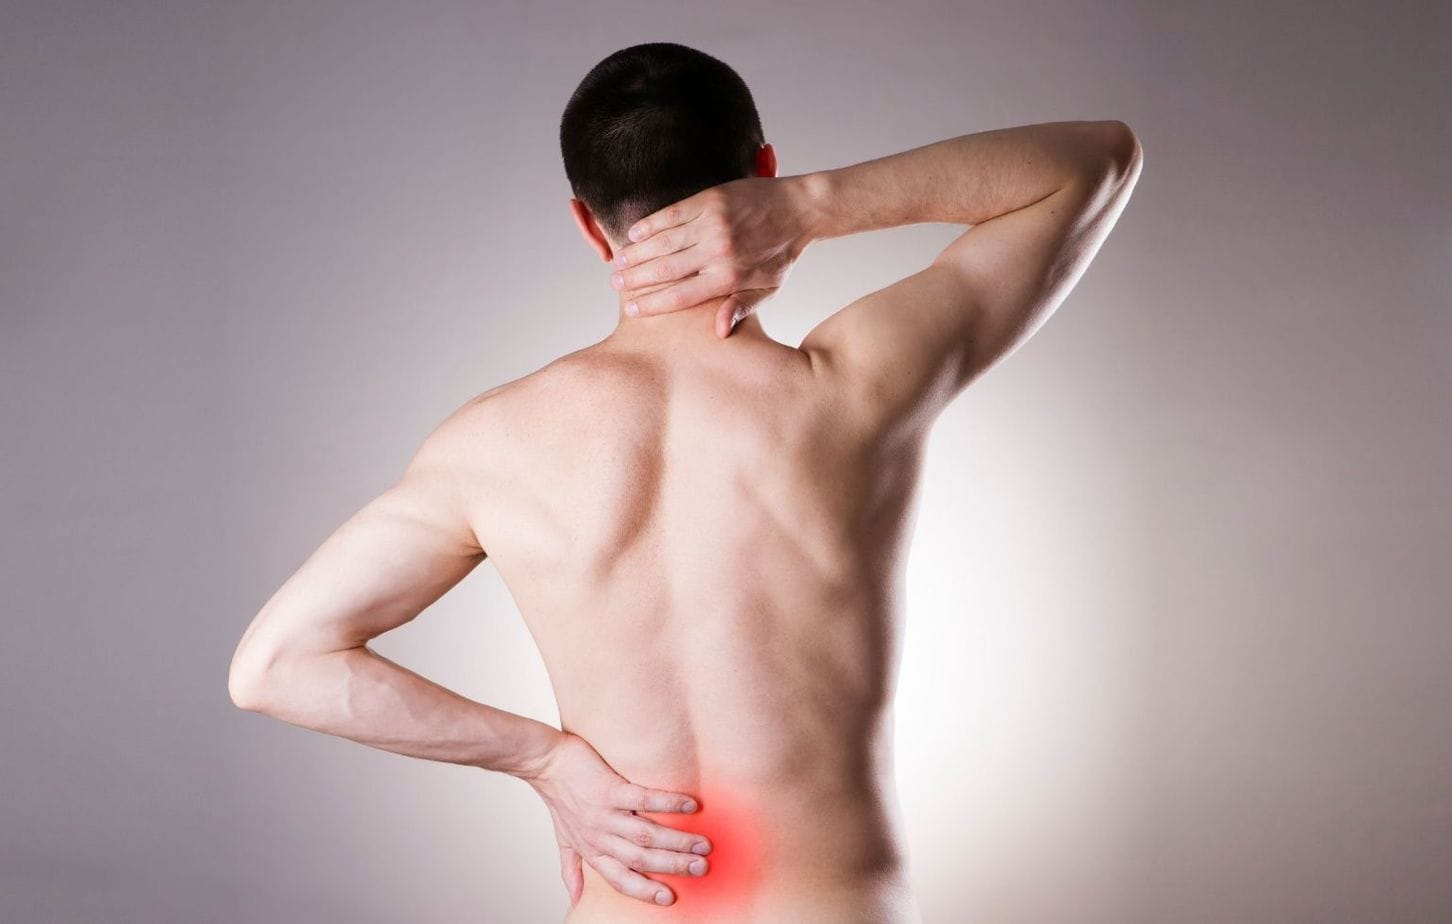 How to avoid lower back pain?